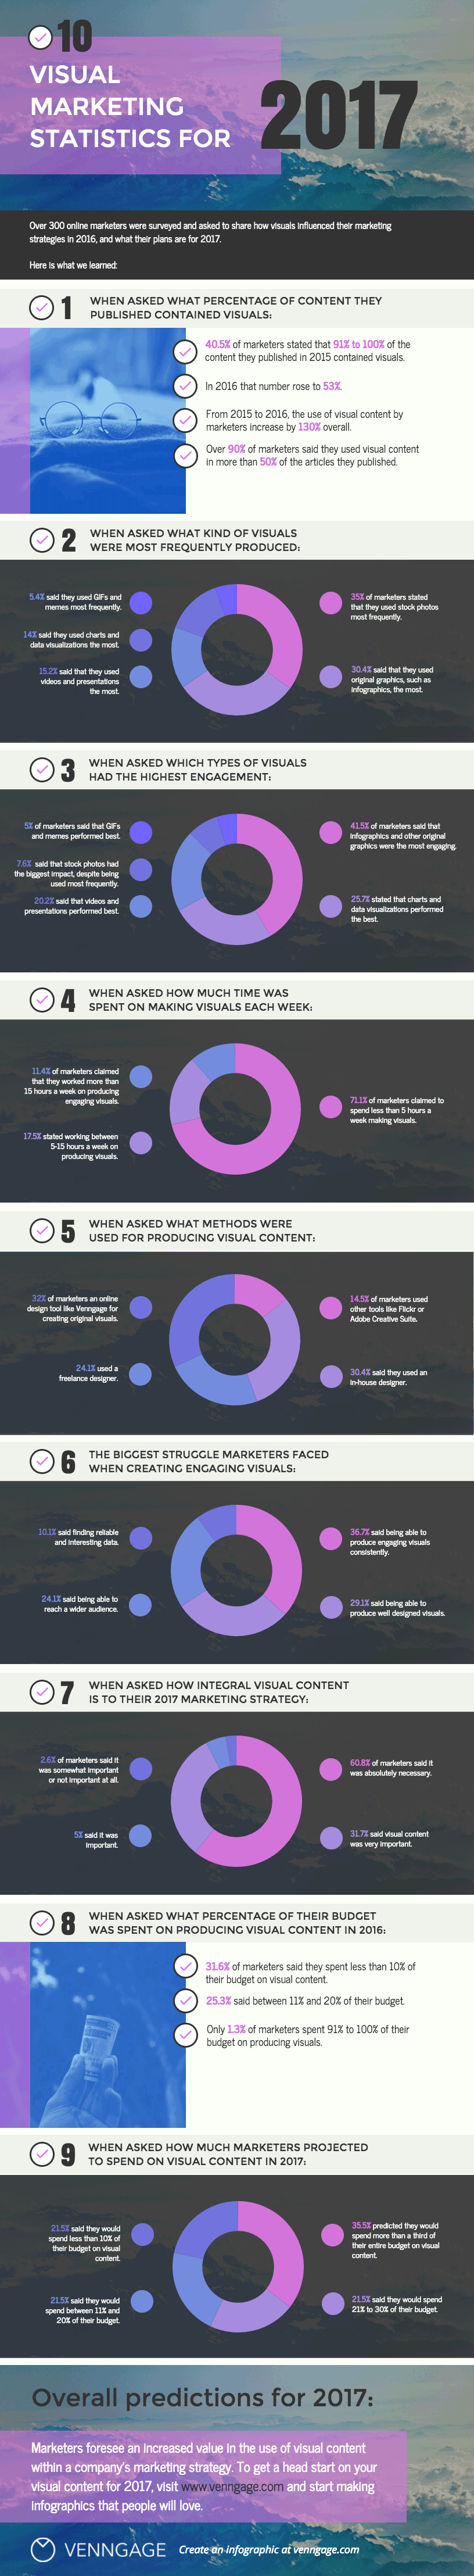 Looking to improve your visual content marketing? Marketers worldwide are increasing and improving their visual content. Check these stats and see why!